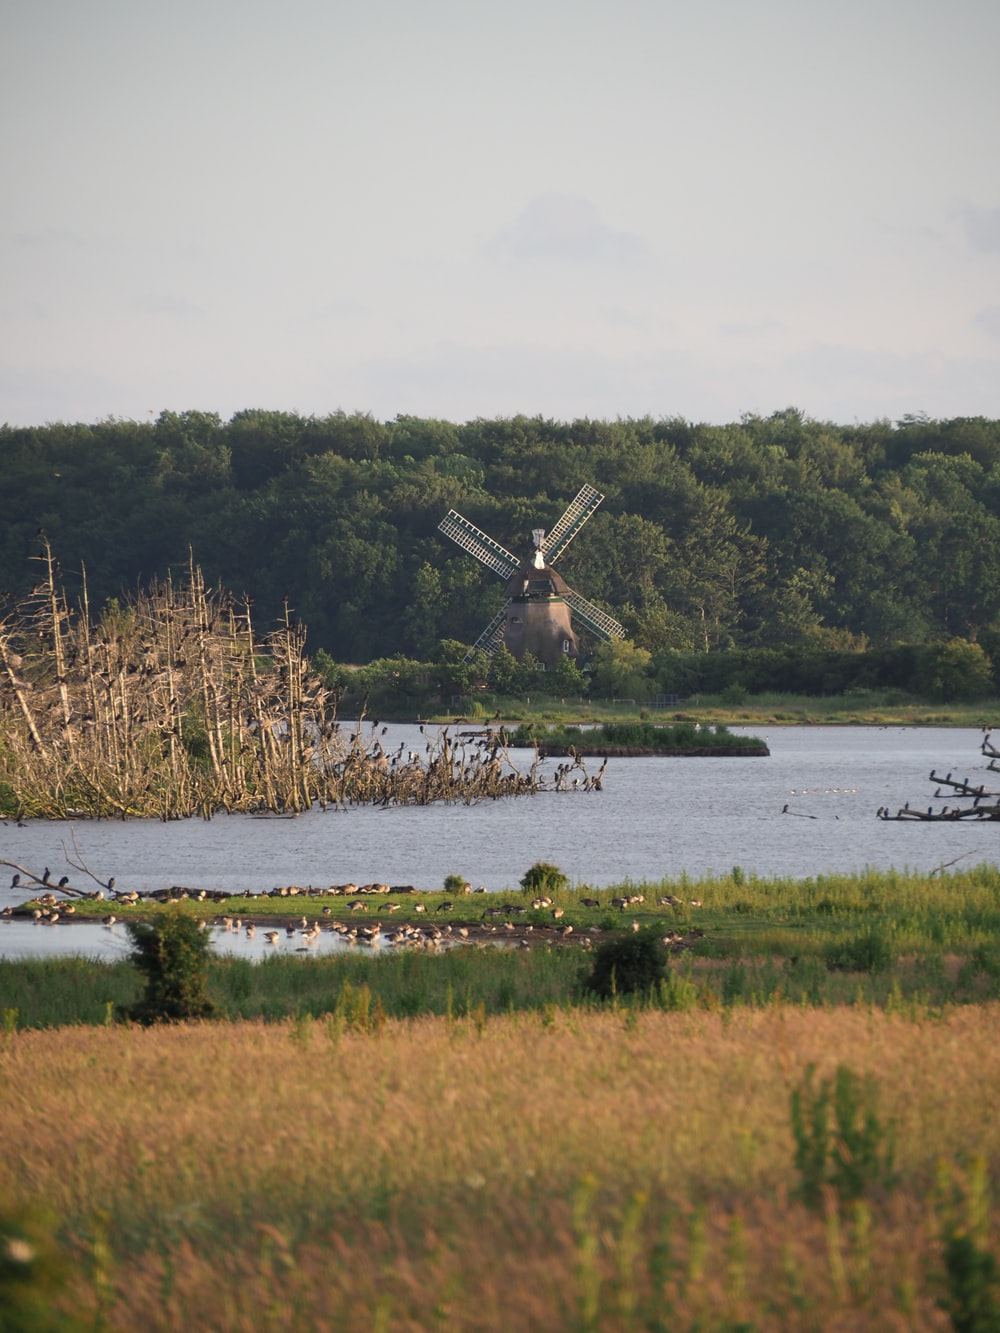 brown and white windmill near green grass field and body of water during daytime